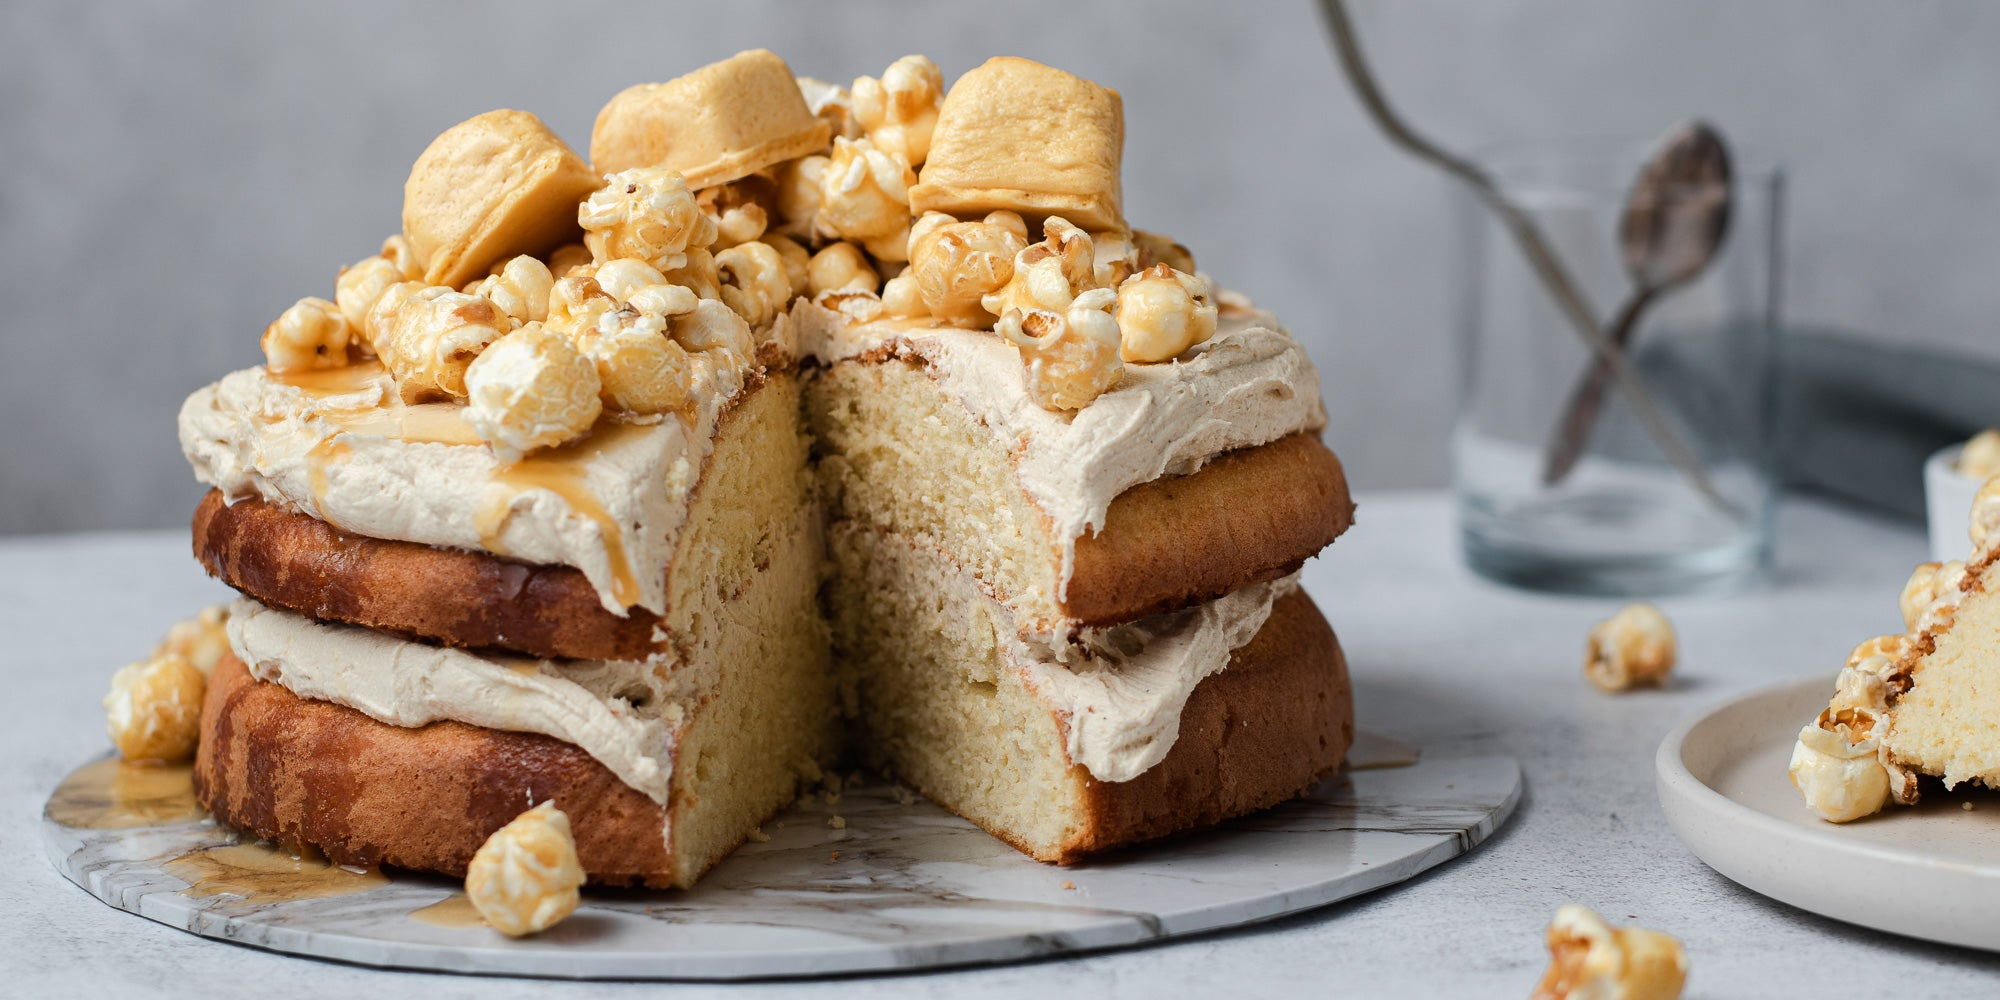 Caramel Cake topped with popcorn